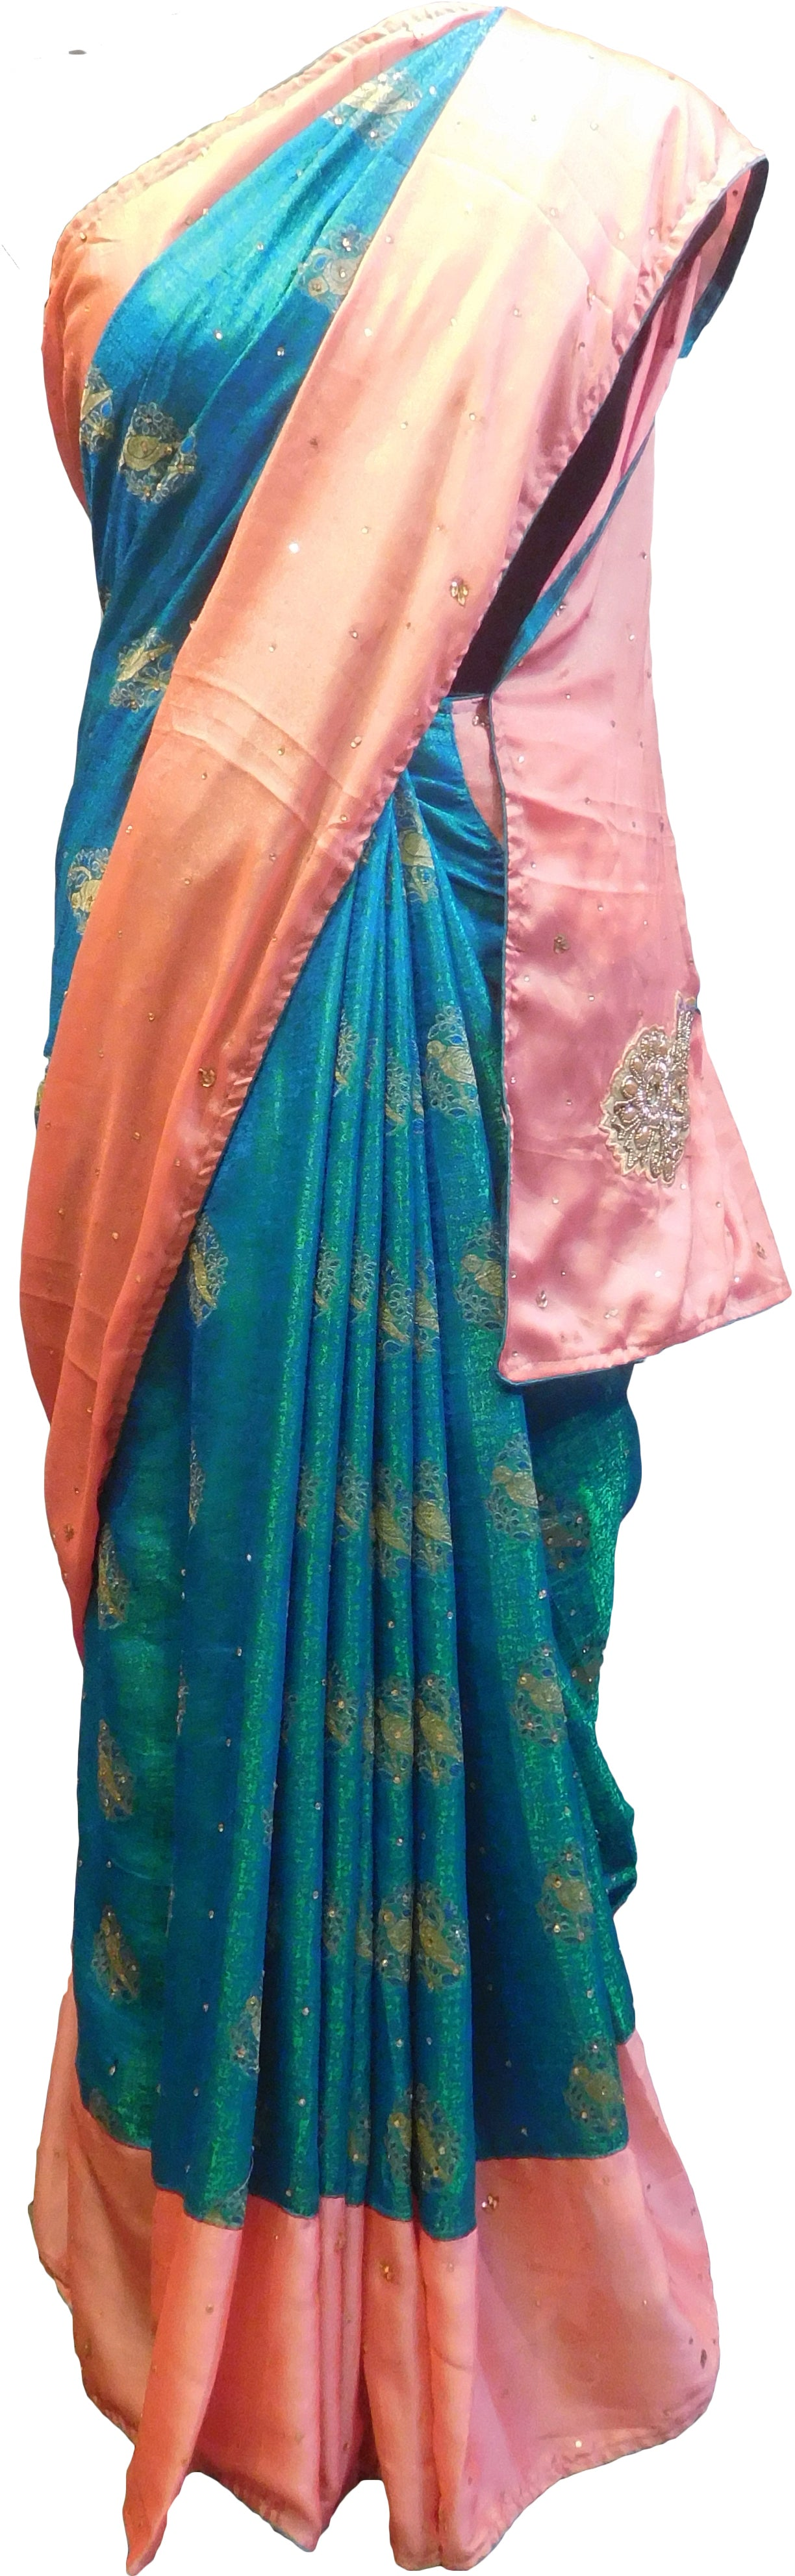 SMSAREE Peach & Turquoise Designer Wedding Partywear Silk Pearl Beads Bullion & Stone Hand Embroidery Work Bridal Saree Sari With Blouse Piece E964